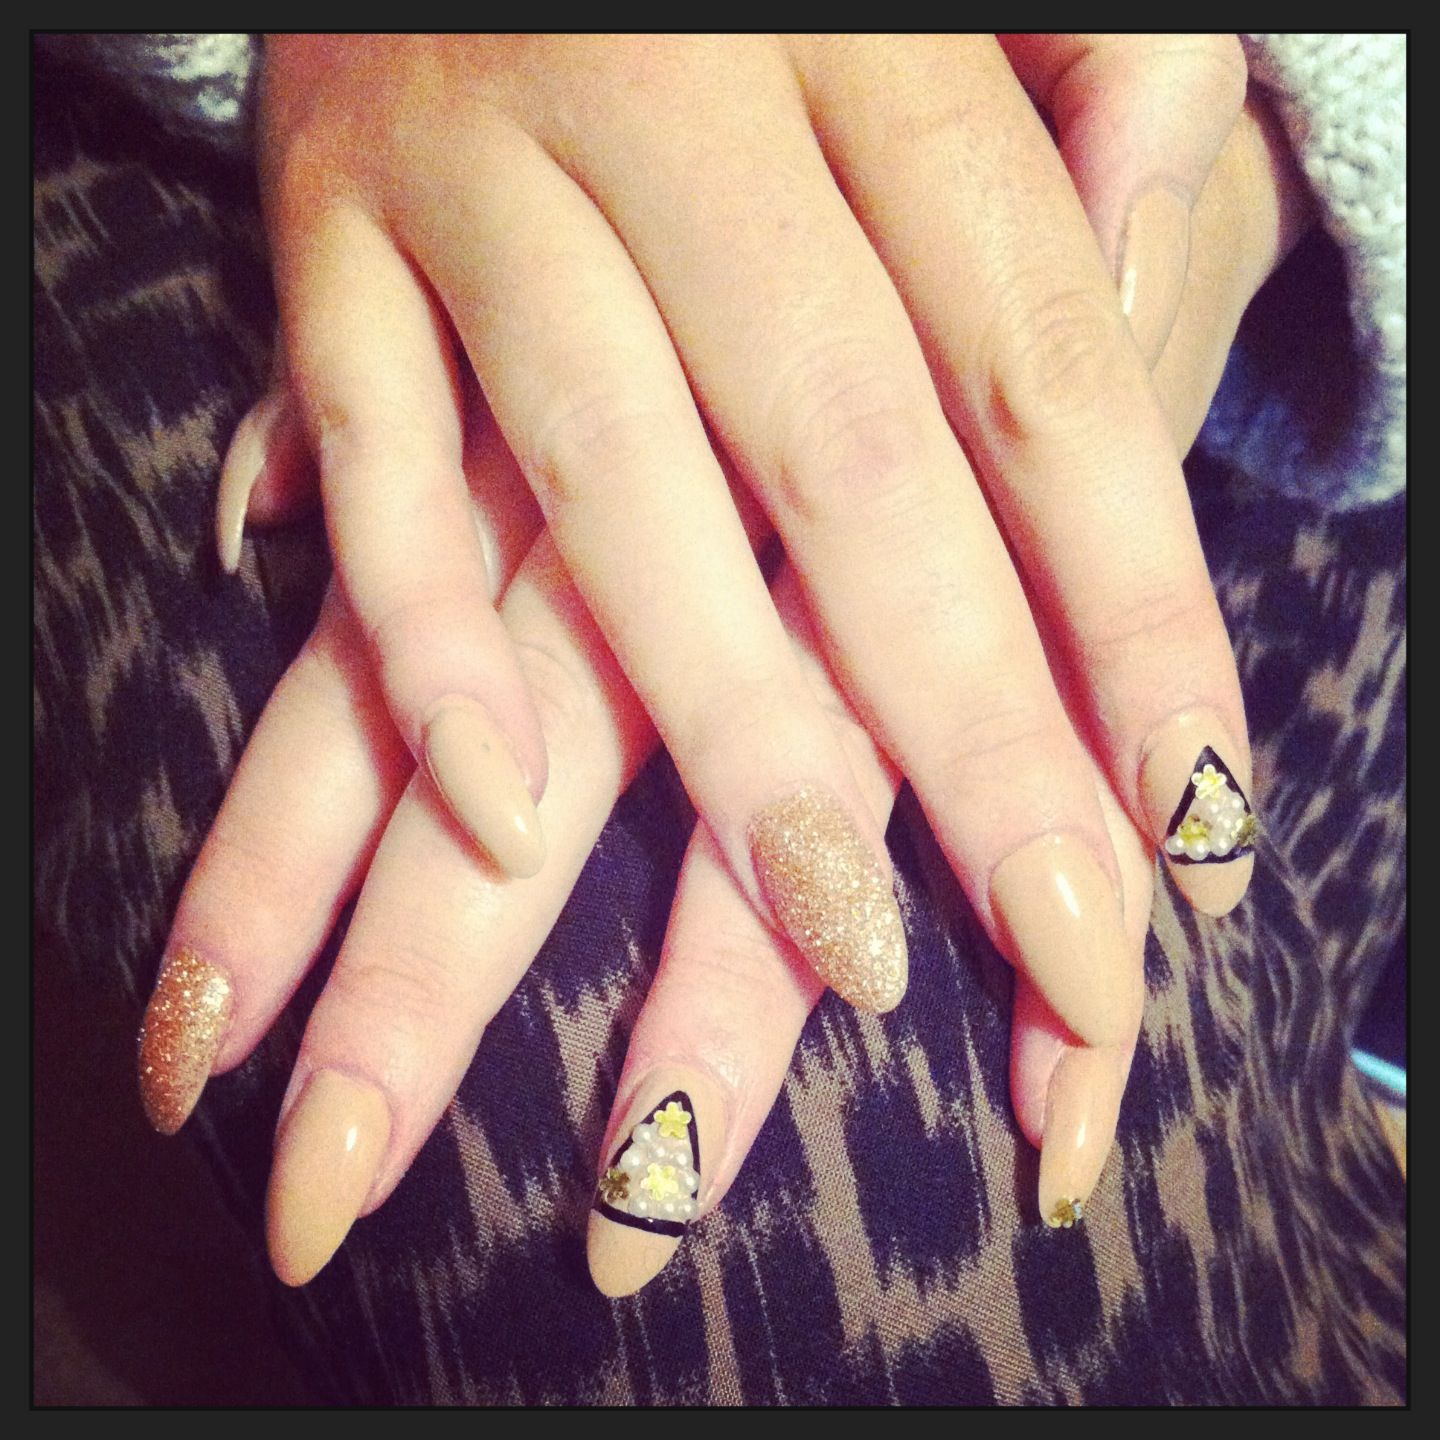 Nails created by CharChar Benson